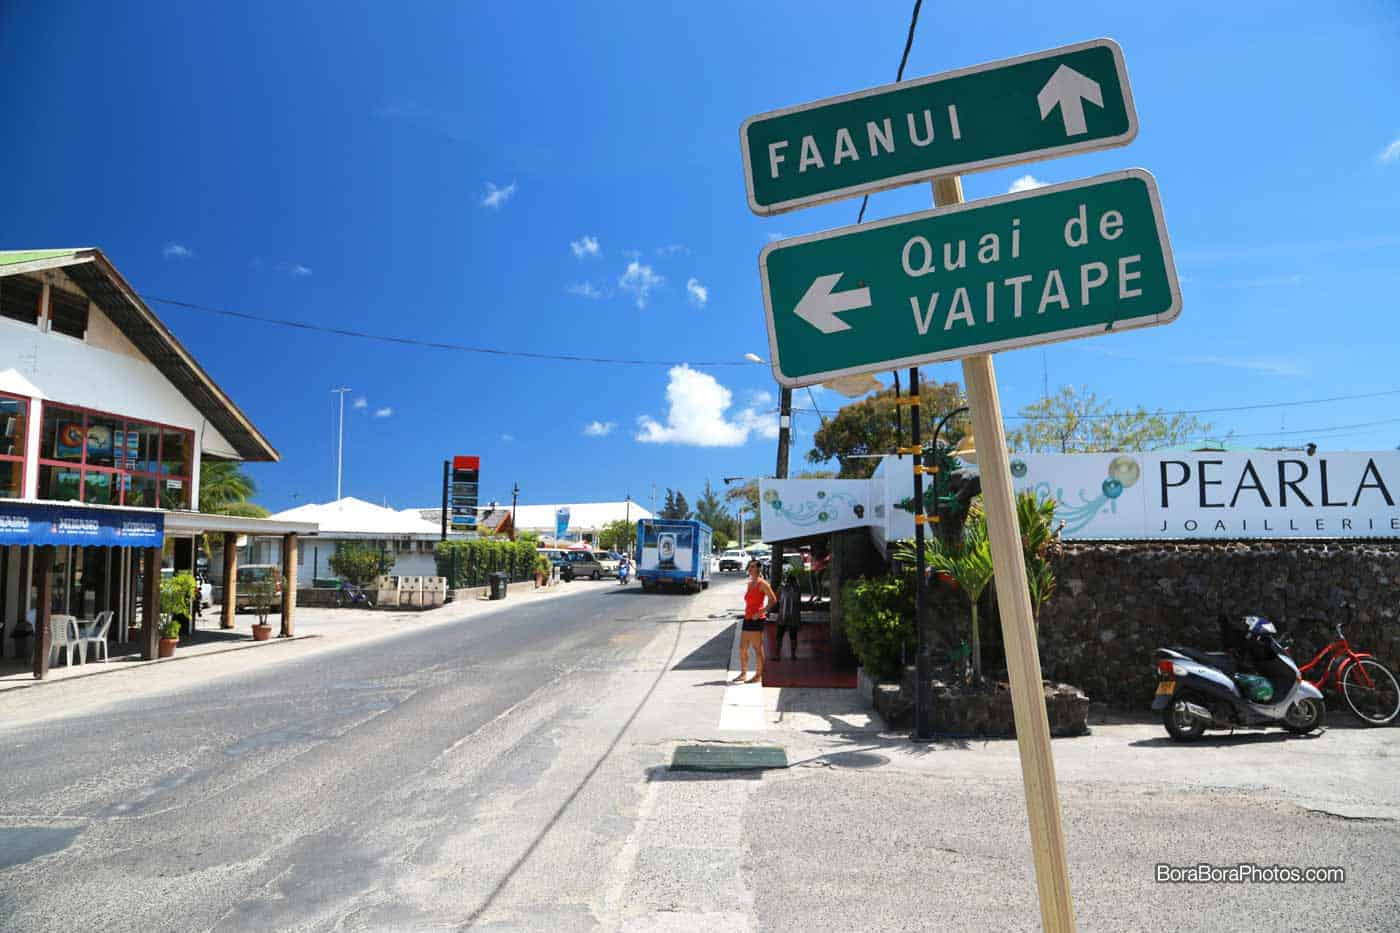 Getting Around Bora Bora Island - Transportation information on how to navigate from the resorts to the main town of Vaitape via taxi service, car, scooter or bike rentals.